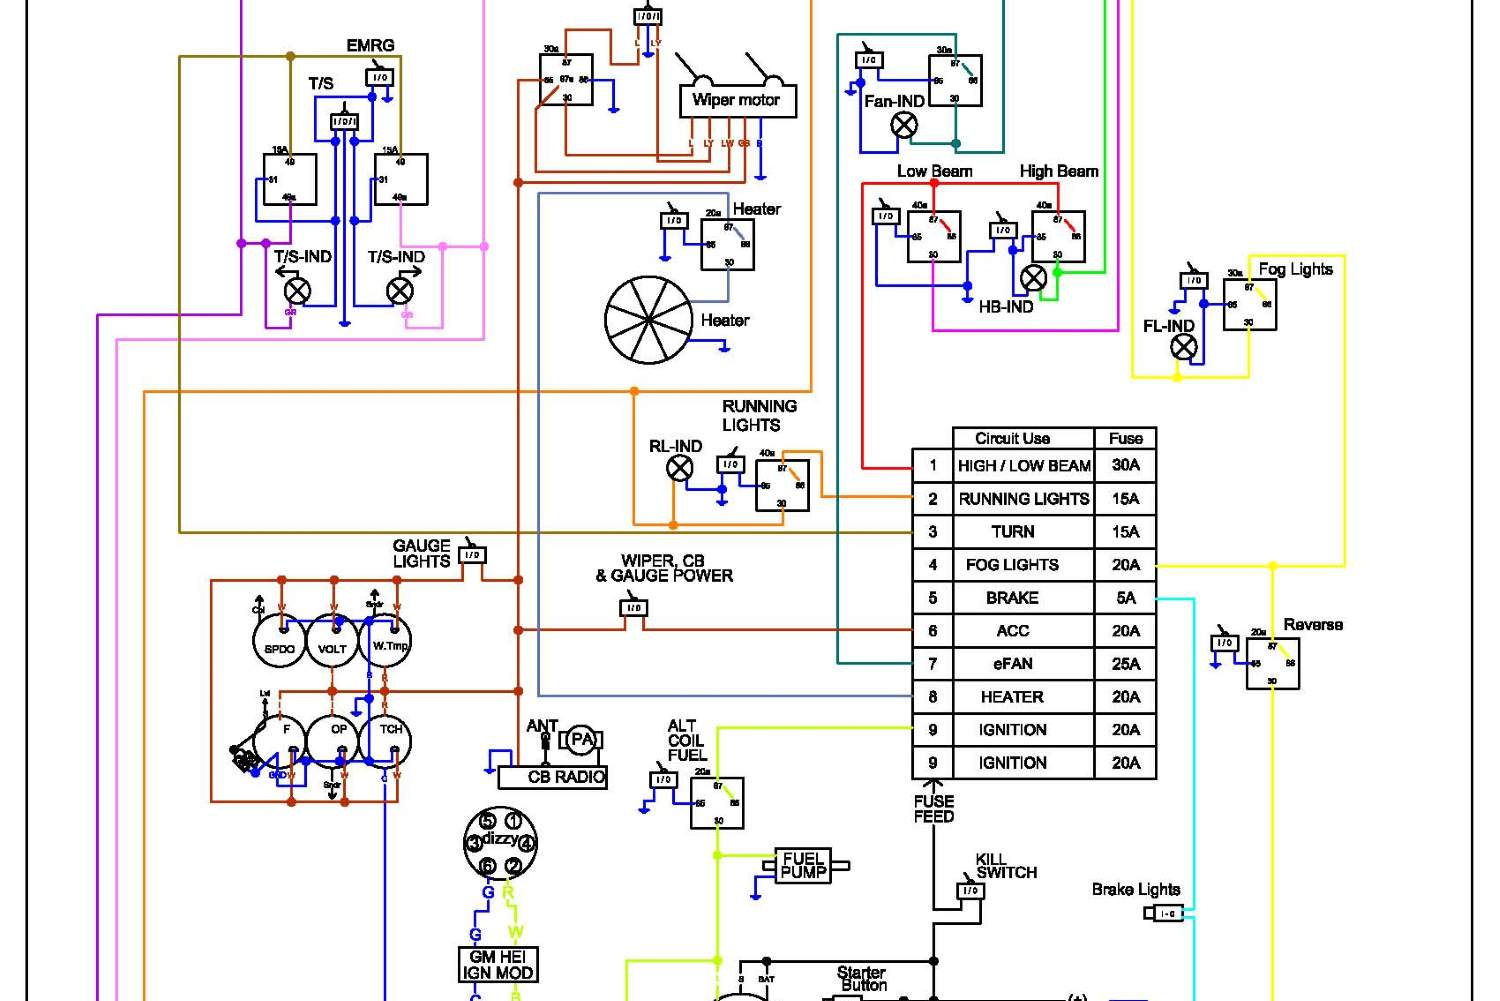 marine tech fuel gauge wiring diagram swm 8 way splitter 4 reasons why your gas isn t working electrical